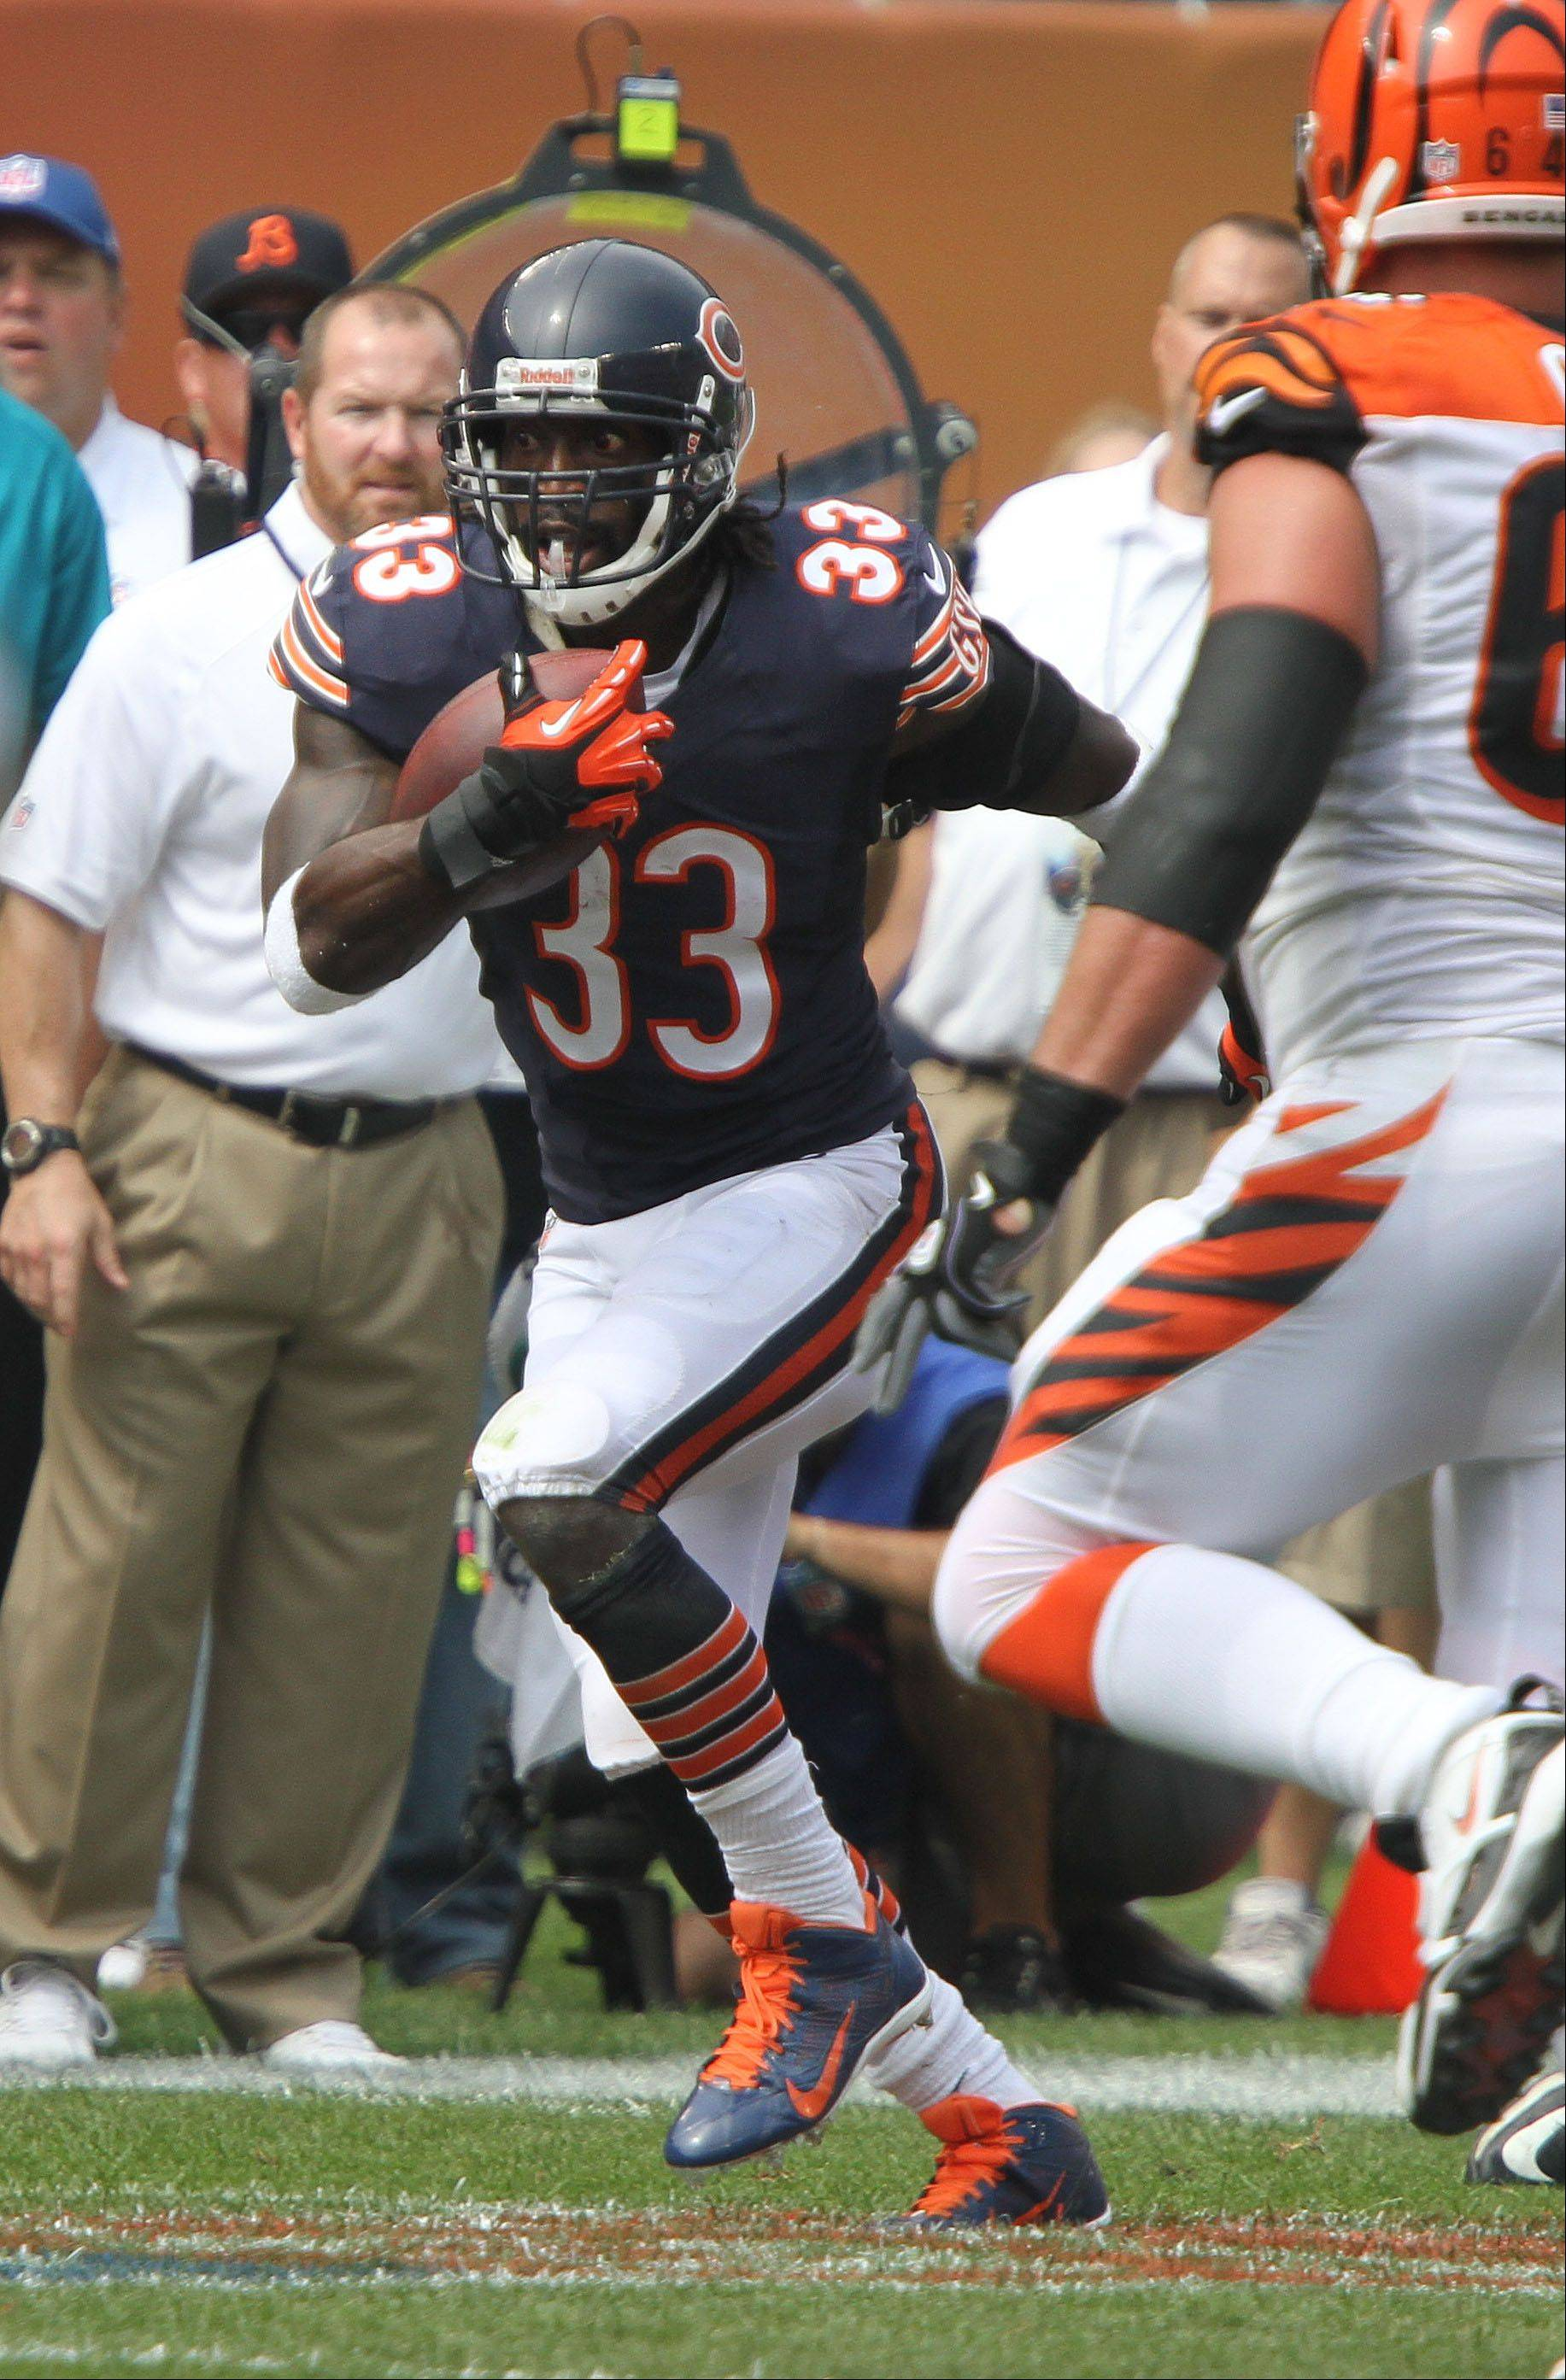 The return of cornerback Charles Tillman should help the Bears' defense do what it does best: take the ball away.